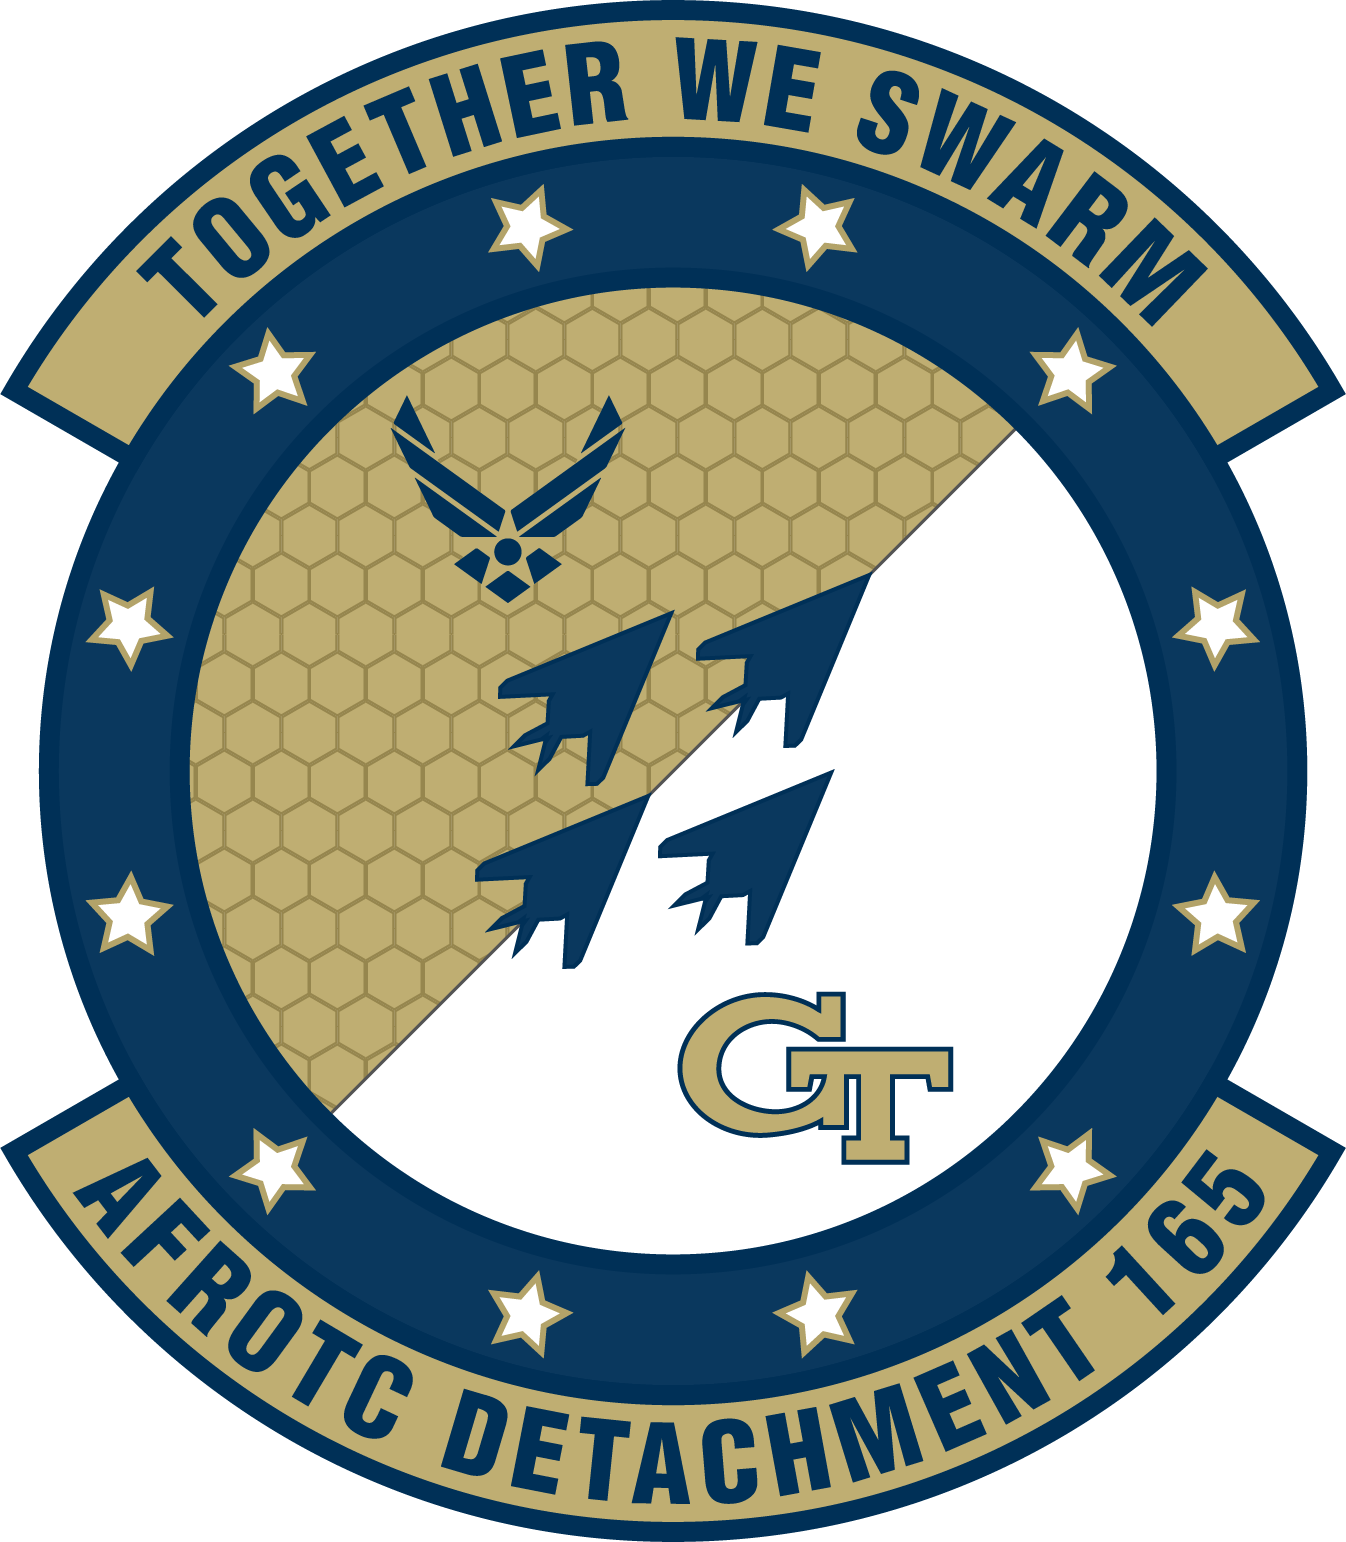 Detachment 165 logo